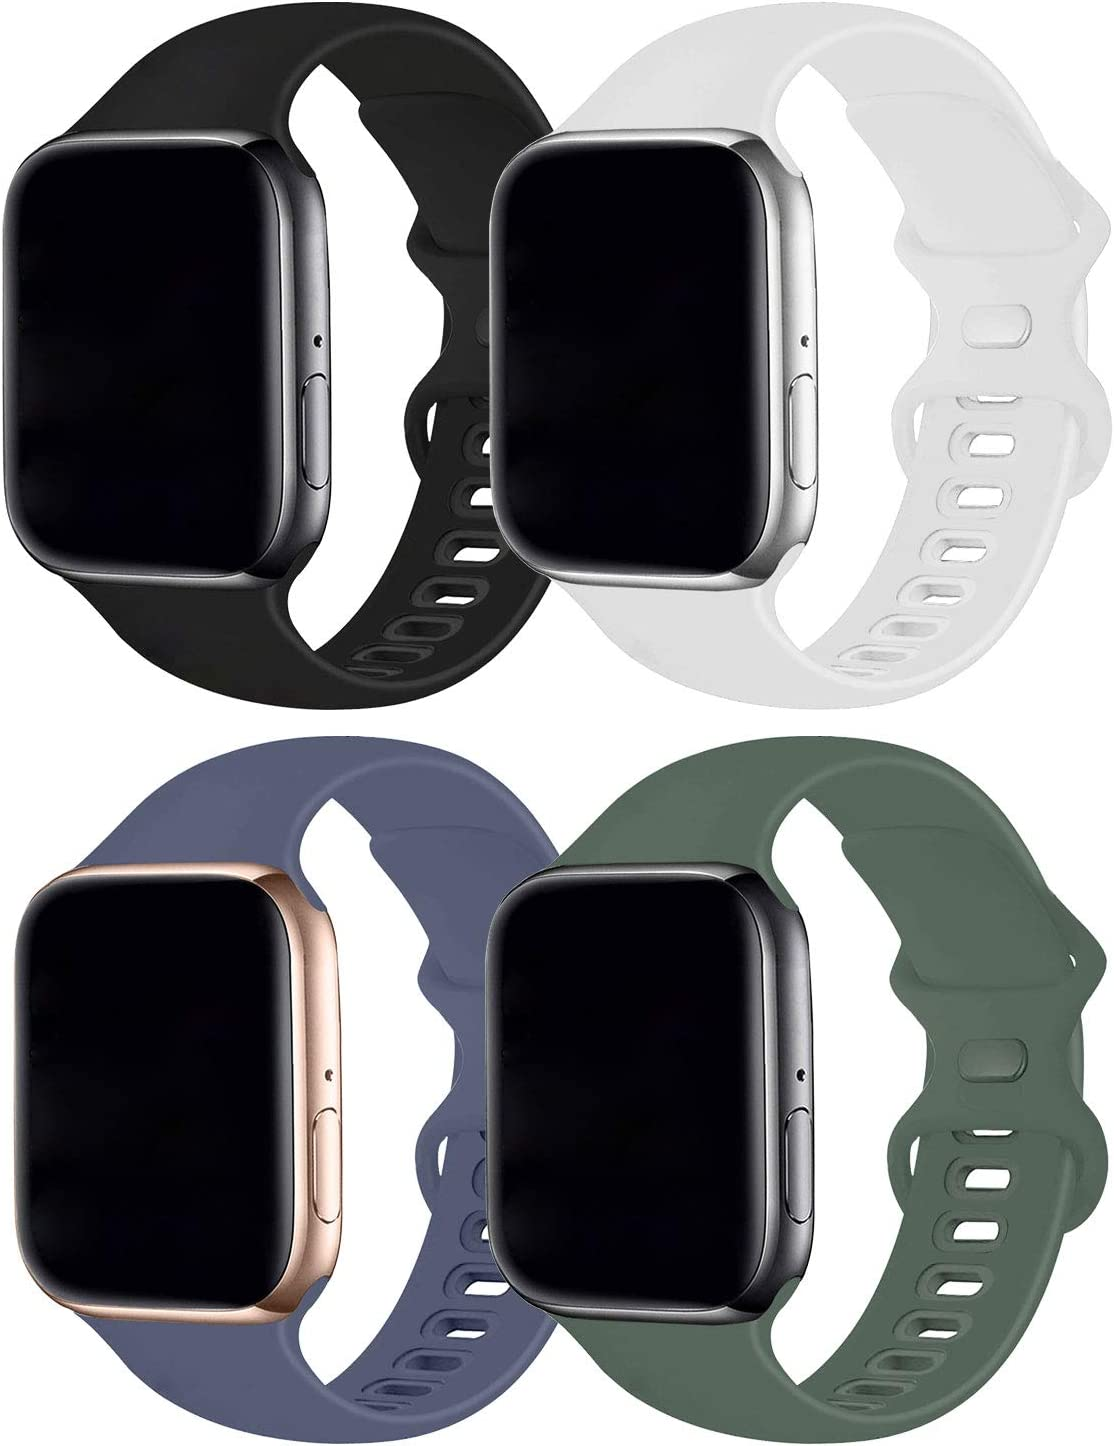 Hotflow 4 Pack Compatible with Apple Watch Band 42mm 44mm,Sport Silicone Soft Replacement Band Compatible for Apple Watch Series SE/6/5/4/3/2/1 [S/M Size - Black/Pine Green/White/Lavender Gray]